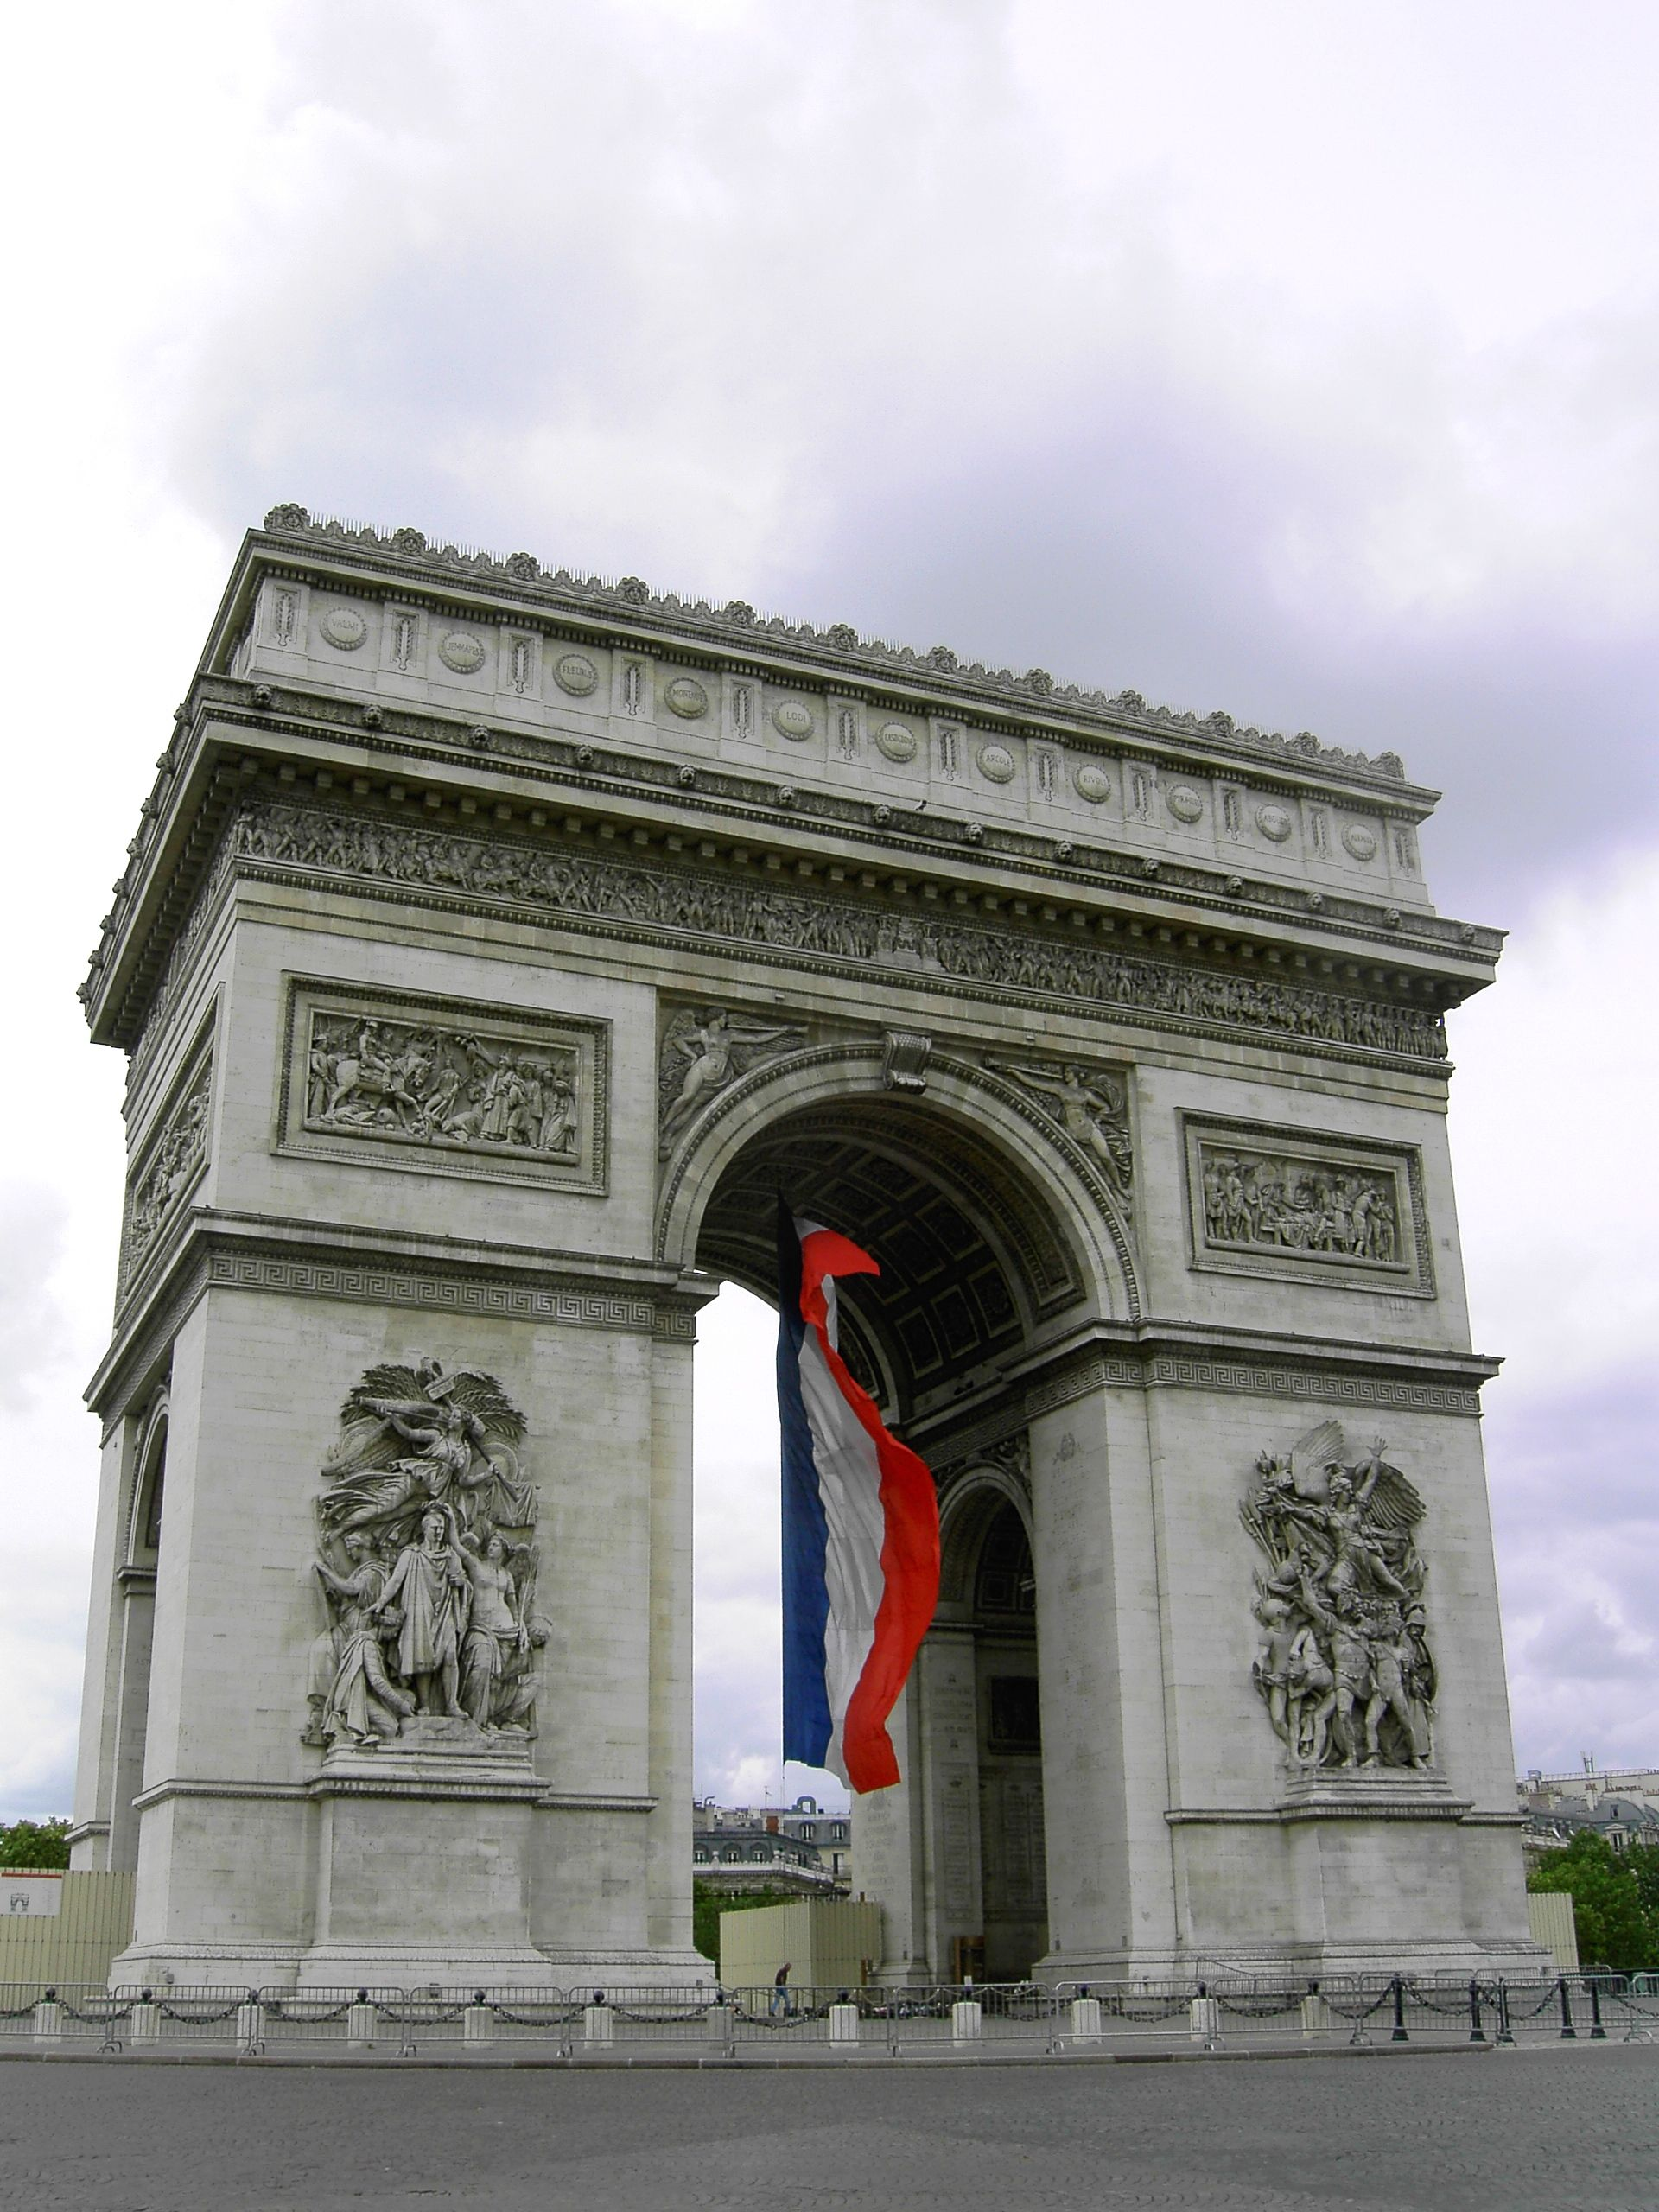 Famous French Architects arc de triomphe, paris, france, with the french flag, view from